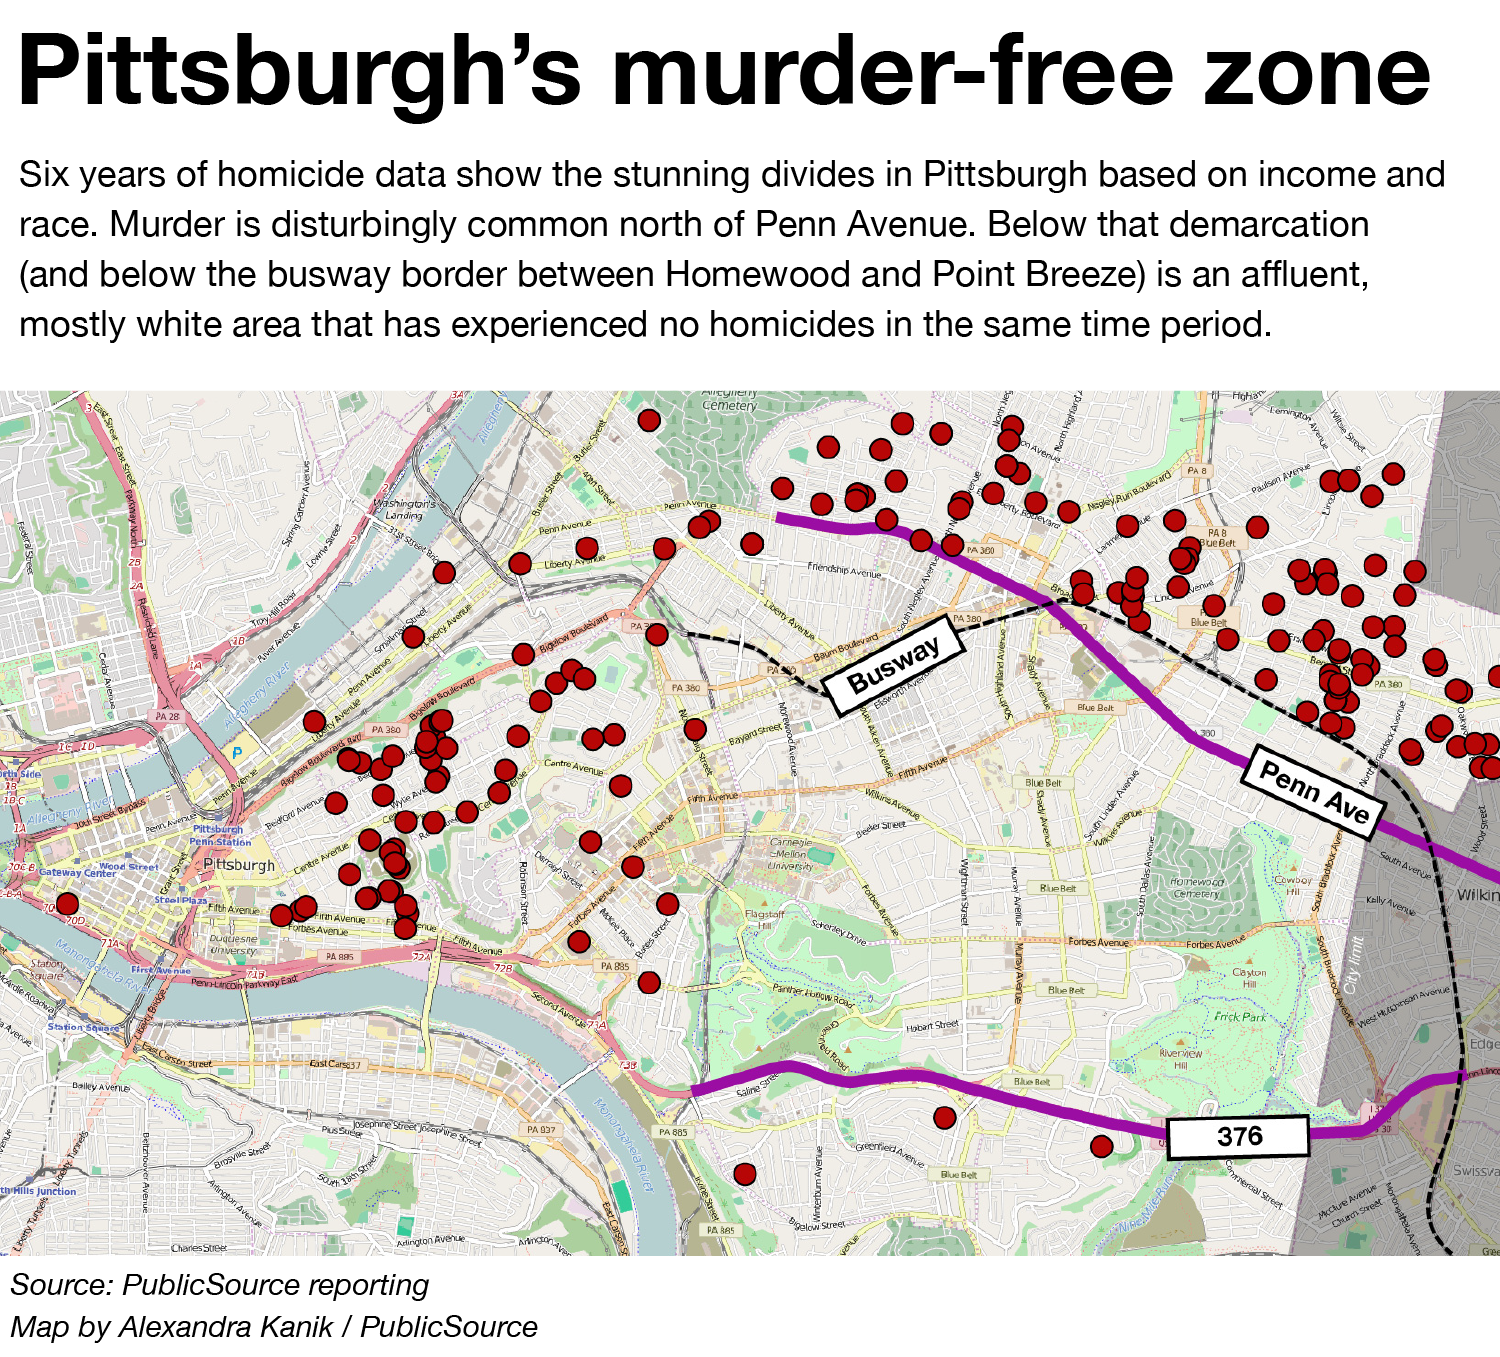 In Pittsburgh, Neighborhood Violence Lives Next Door To Prosperity on pittsburgh bus map, southside pittsburgh map, pittsburgh streetcar map, north park pittsburgh map, north shore t station, north park pavilions pittsburgh, ccac allegheny campus map, north hills pittsburgh neighborhood map, north pittsburgh pa map, heinz field parking lot map, northside pittsburgh map, north shore pittsburgh map, pittsburgh t map, pittsburgh zone map, schenley park map, pennsylvania national parks map, ottawa county ohio map, pittsburgh pa subway map, north park trails pittsburgh, moraine state park trail map,